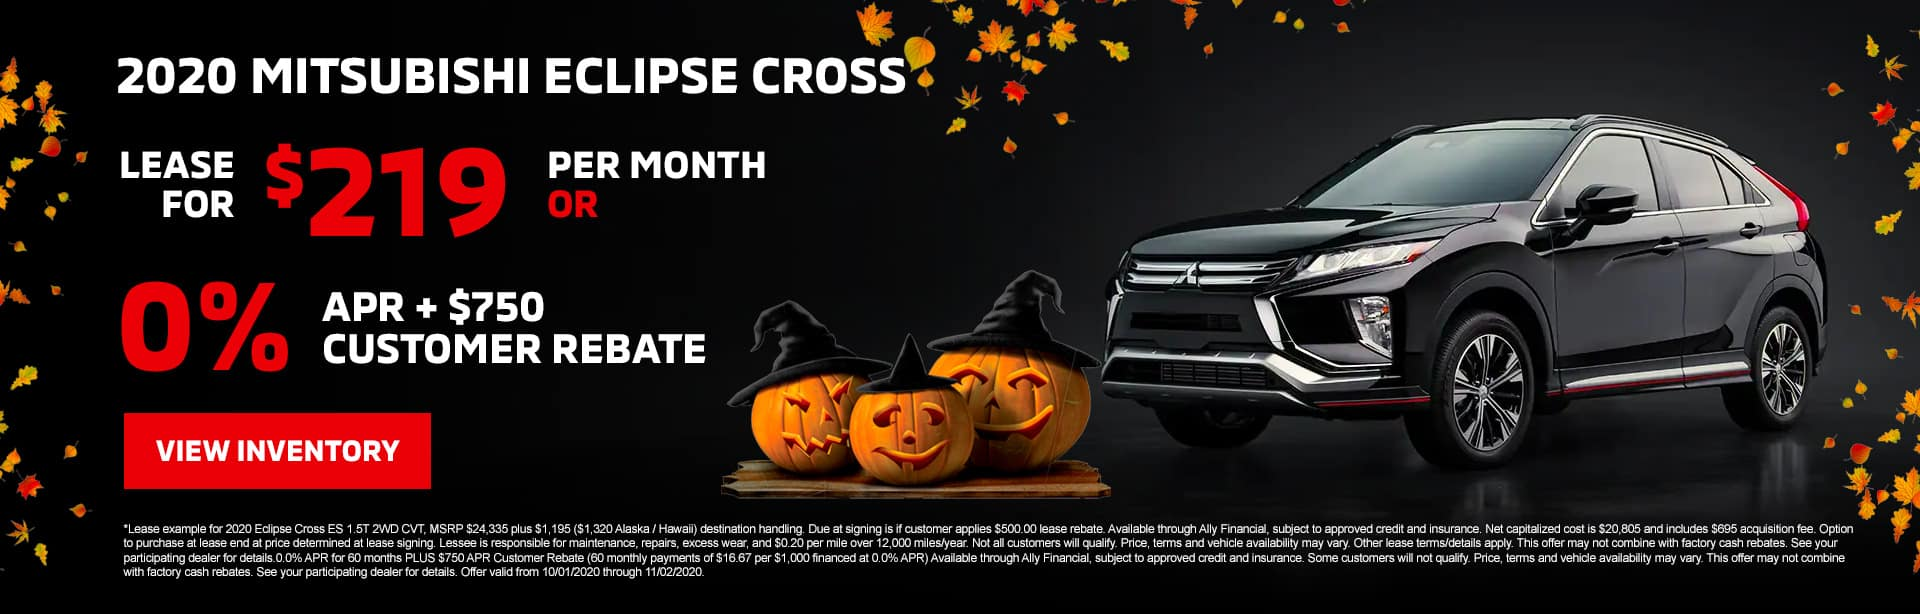 2020 Mitsubishi Eclipse Cross Lease for $219/mo with $3,943 due at signing OR 0.0% APR + $750 Customer Rebate